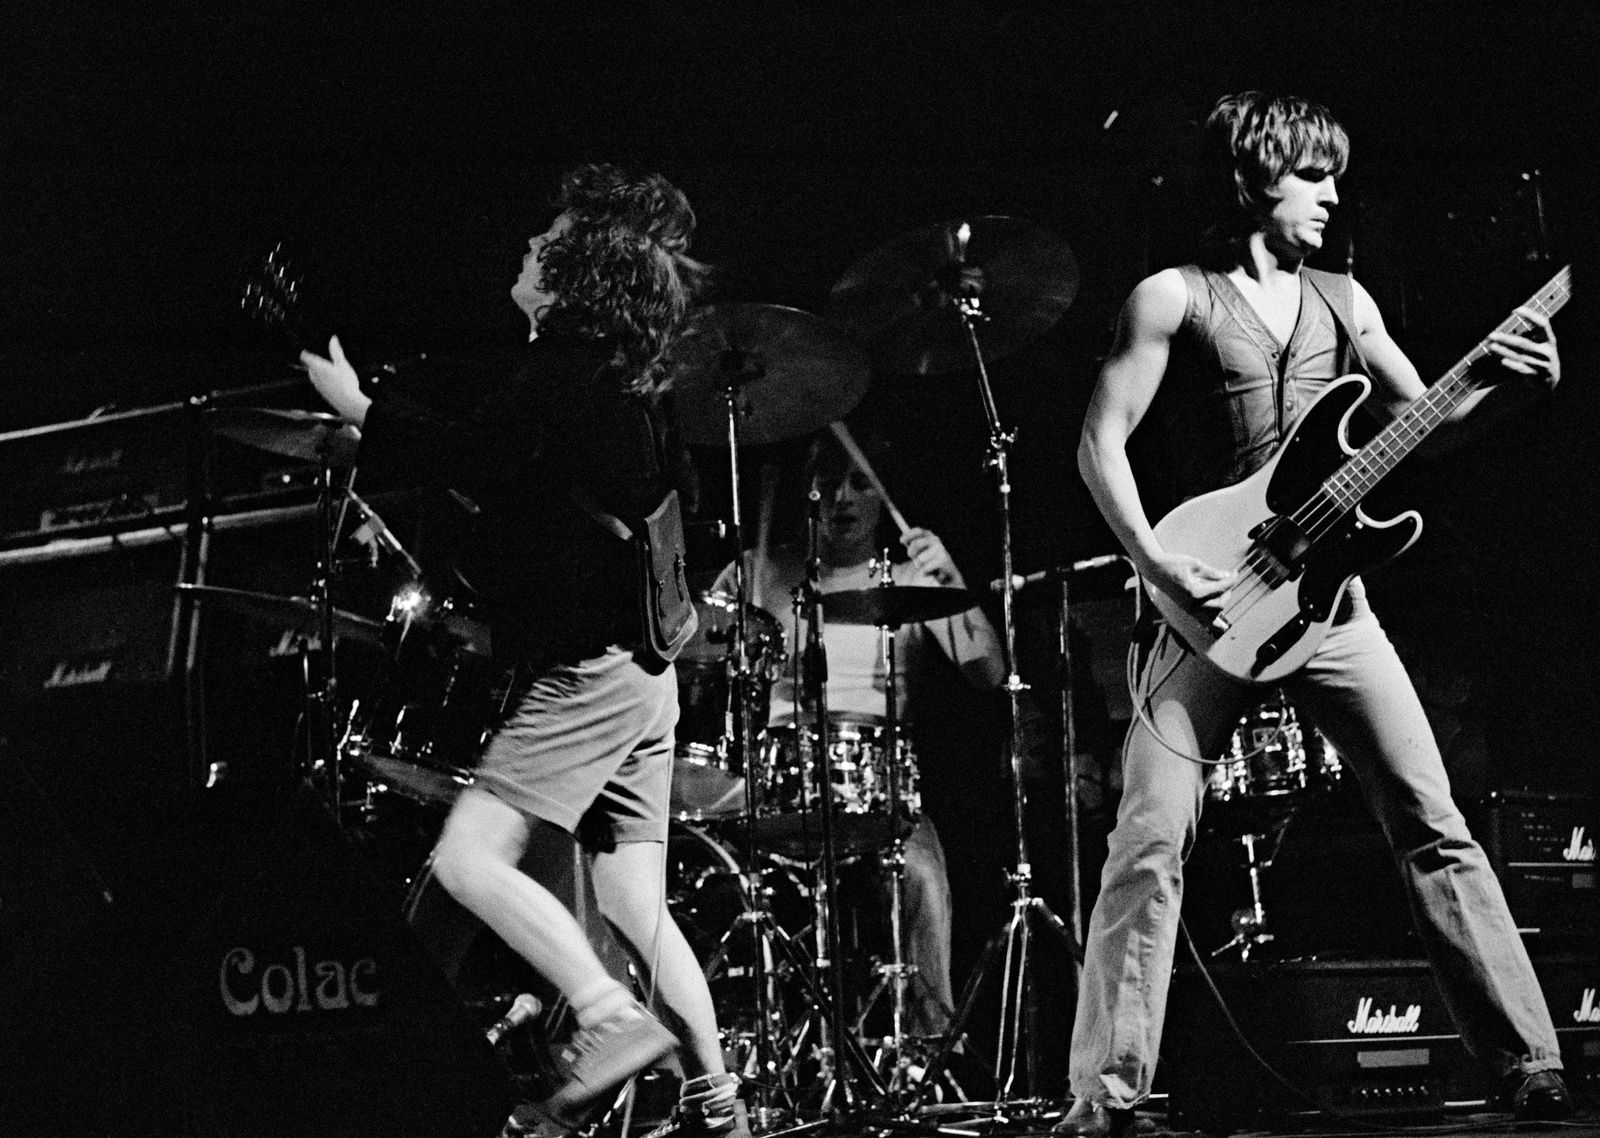 Angus Young and Mark Evans on stage - AC/DC, late 70s